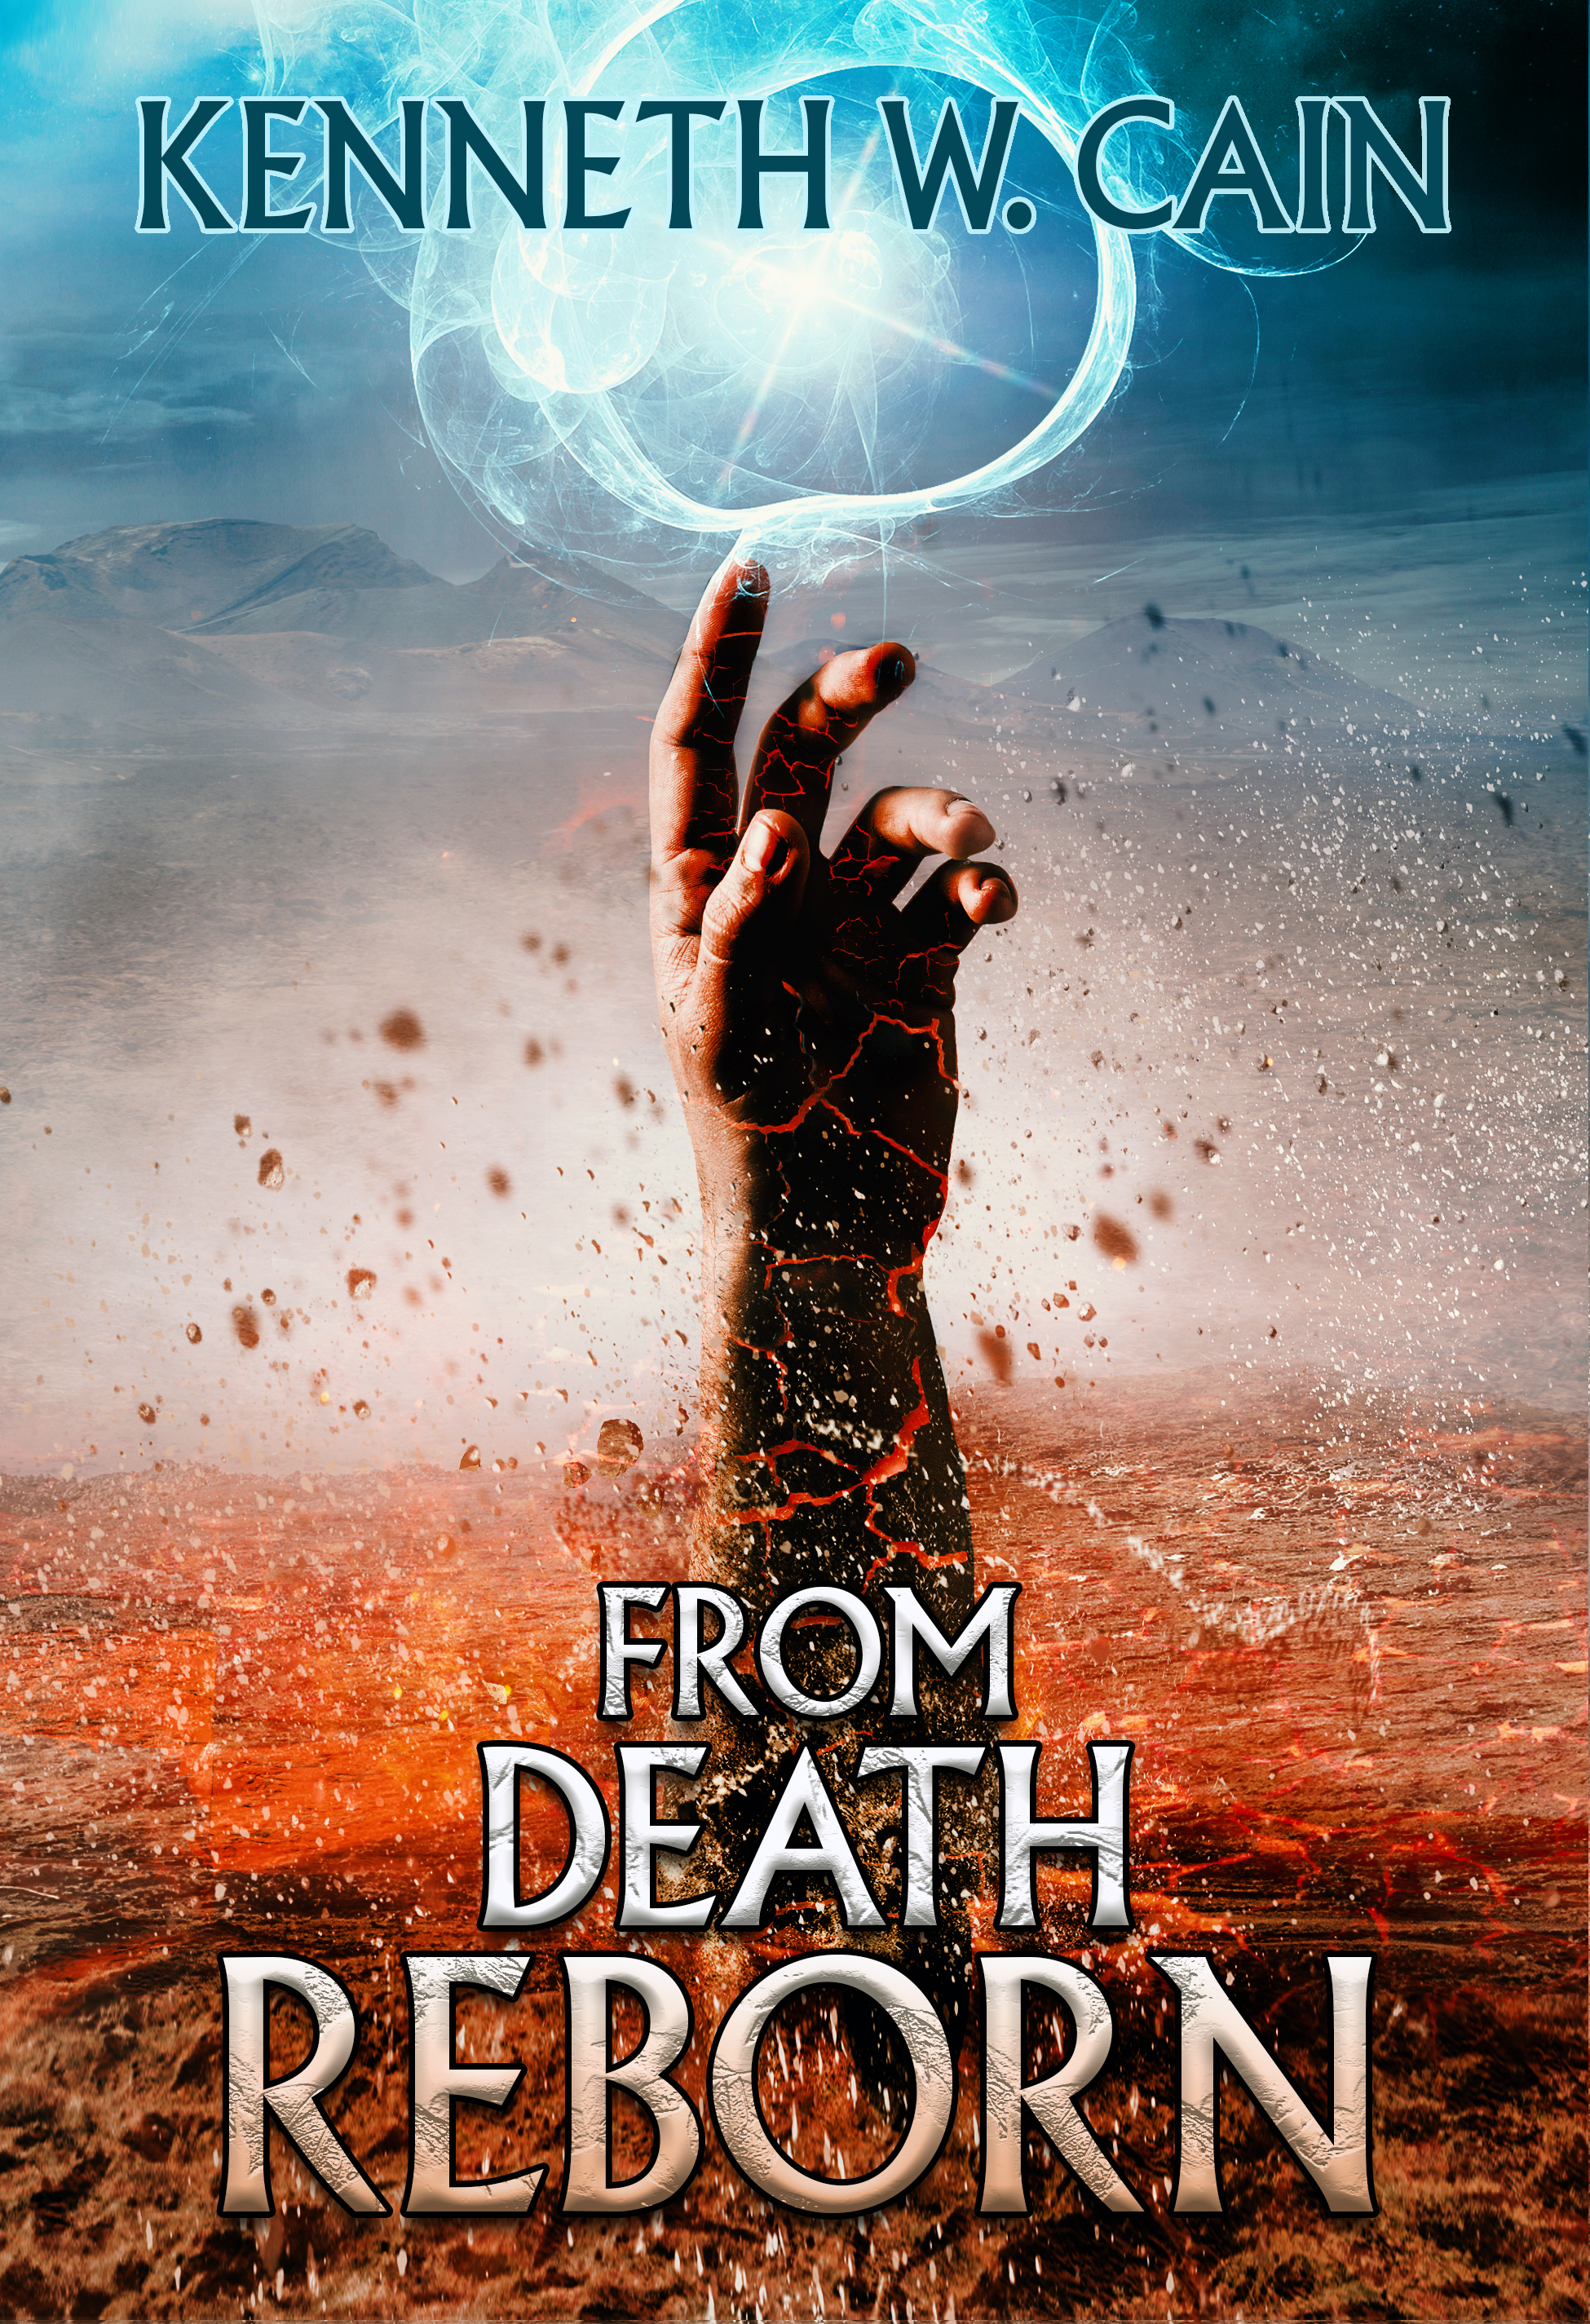 from-death-reborn